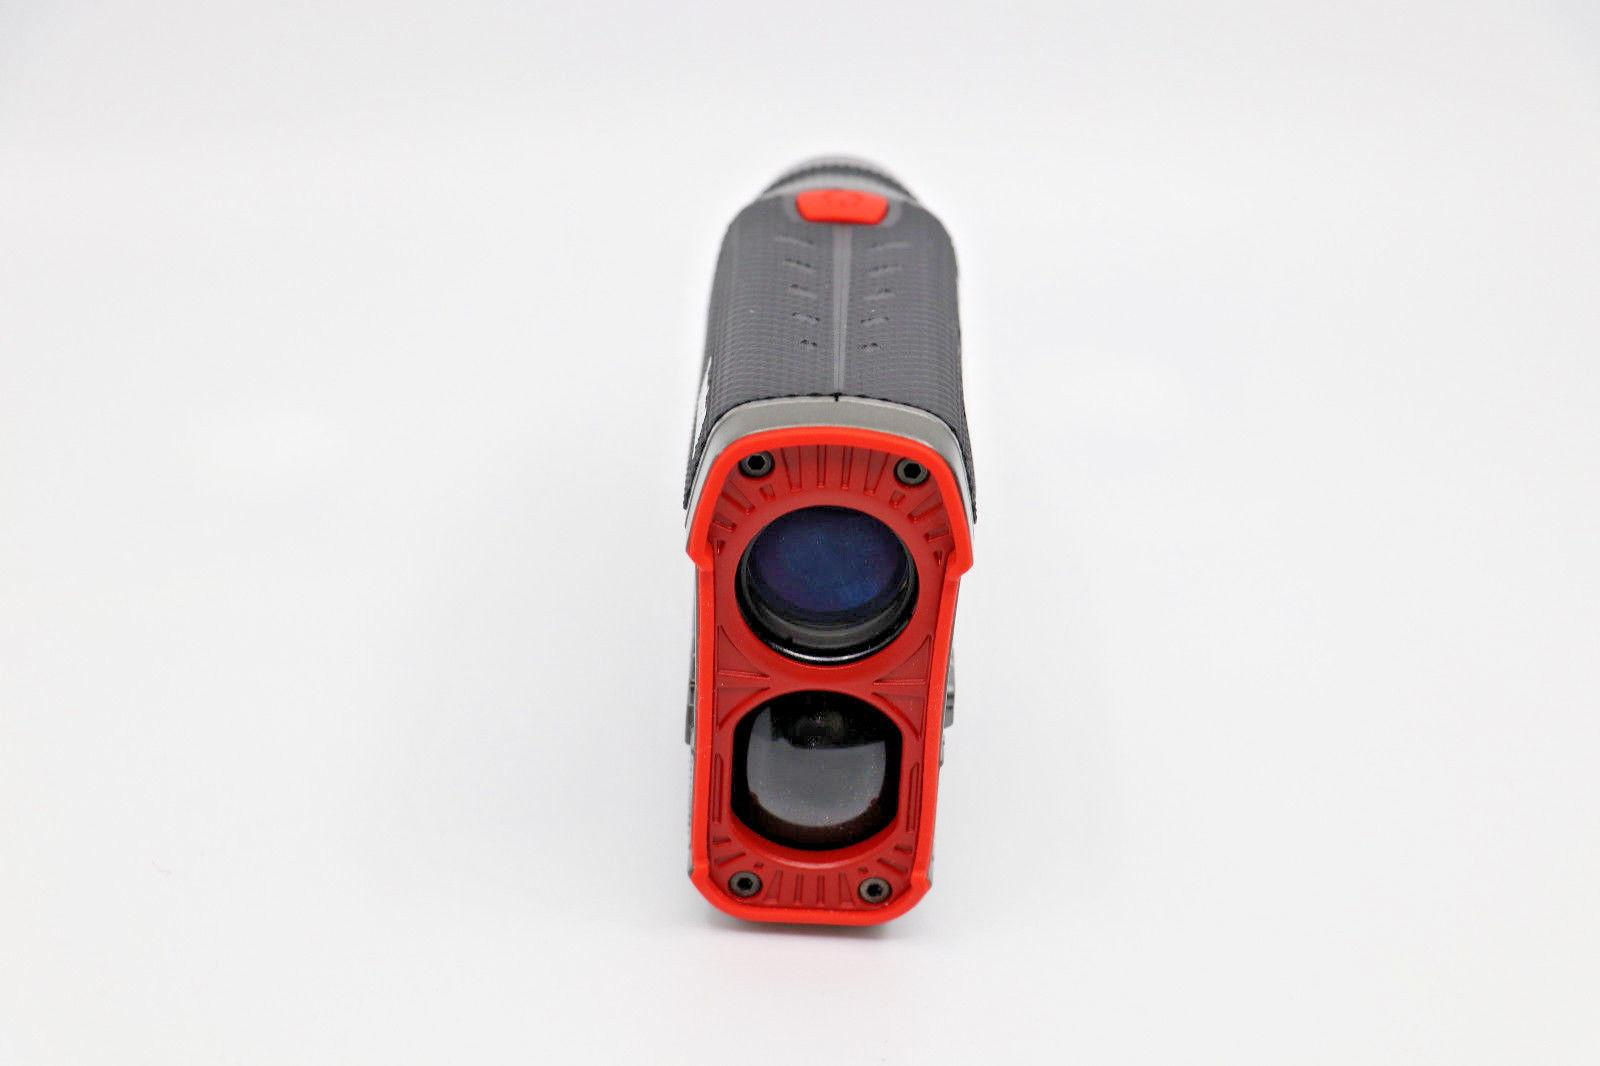 Bushnell Pro X2 Laser with Slope Switch